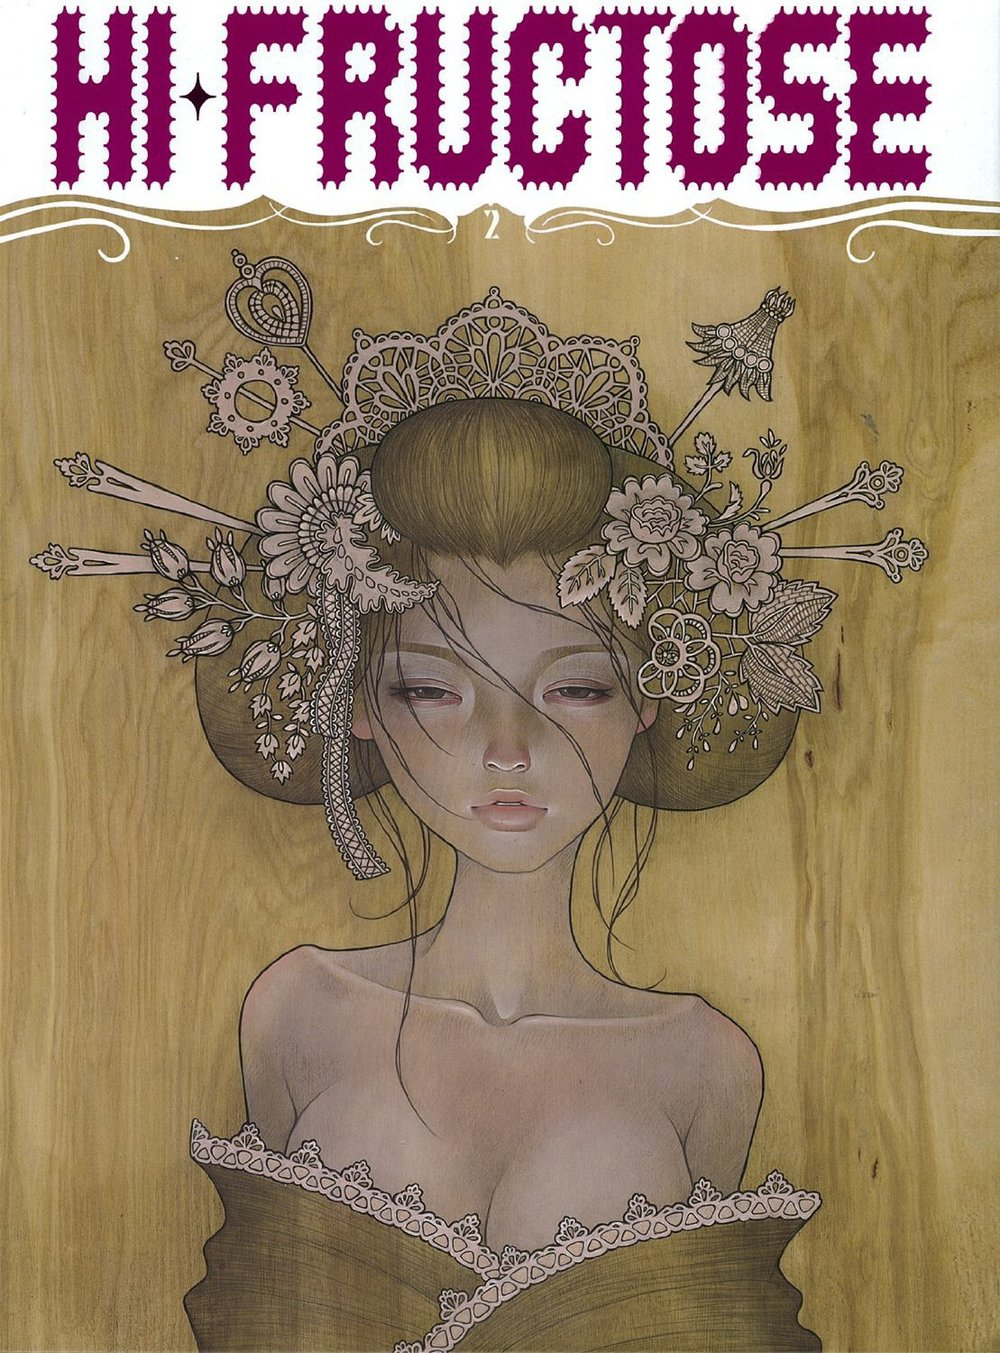 HI-FRUCTOSE COLLECTED EDITION VOLUME 2 // LAST GASP // 2010